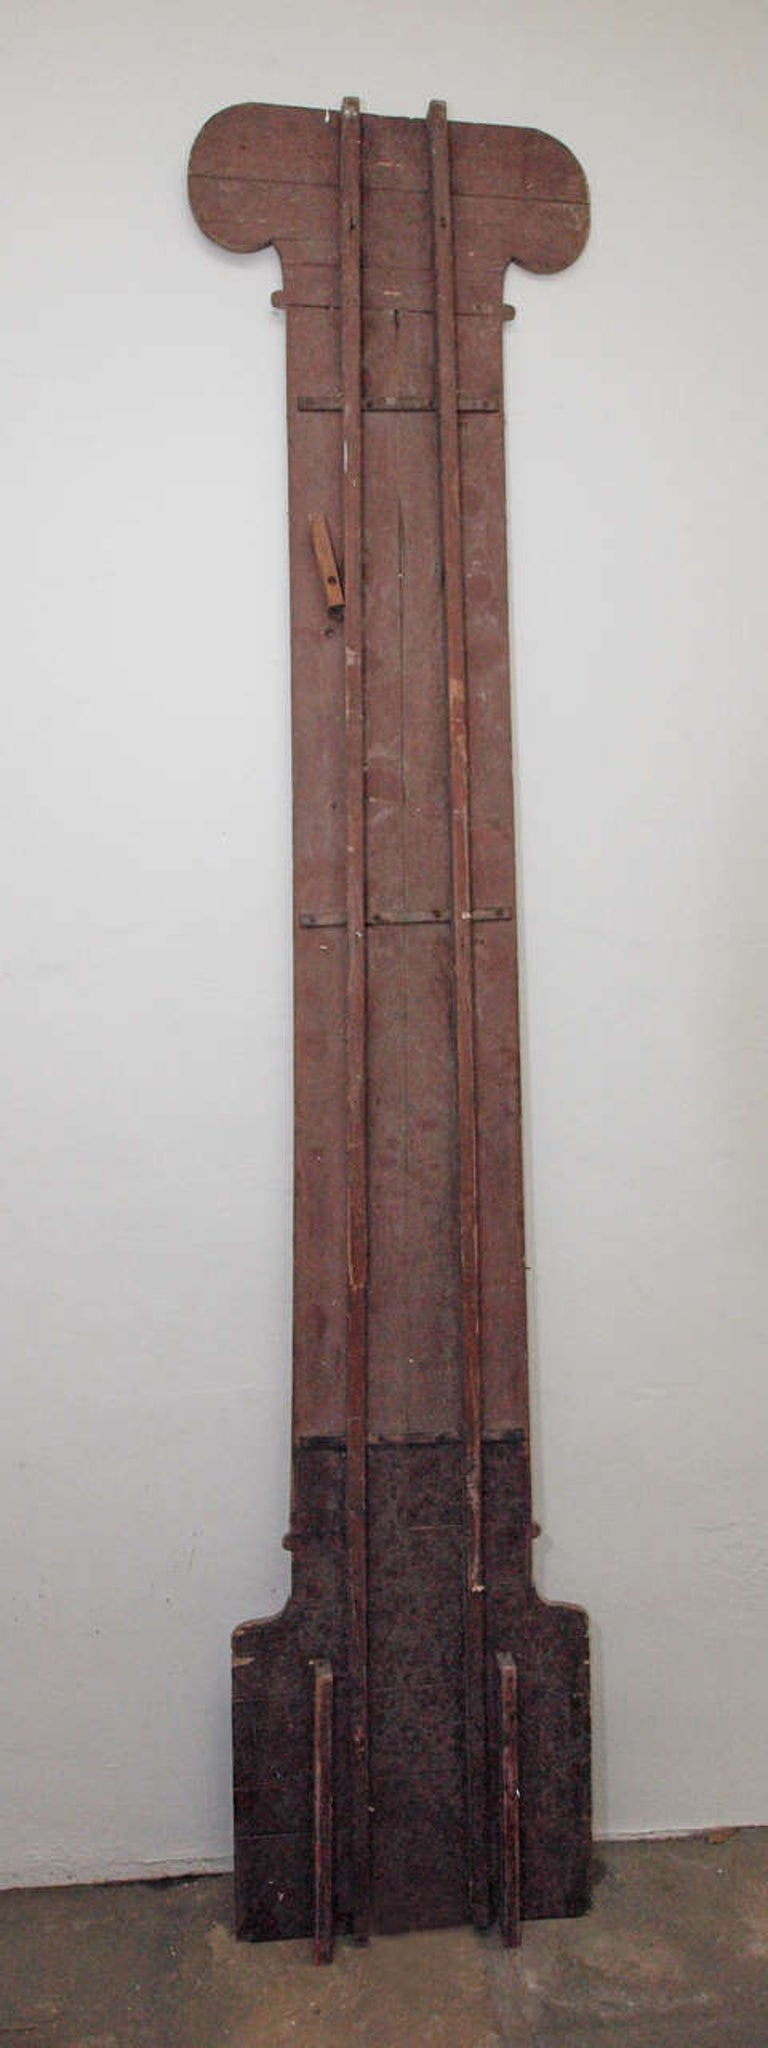 Dramatic Pair of Trompe L'Oeil Columns, 20th Century, France For Sale 2